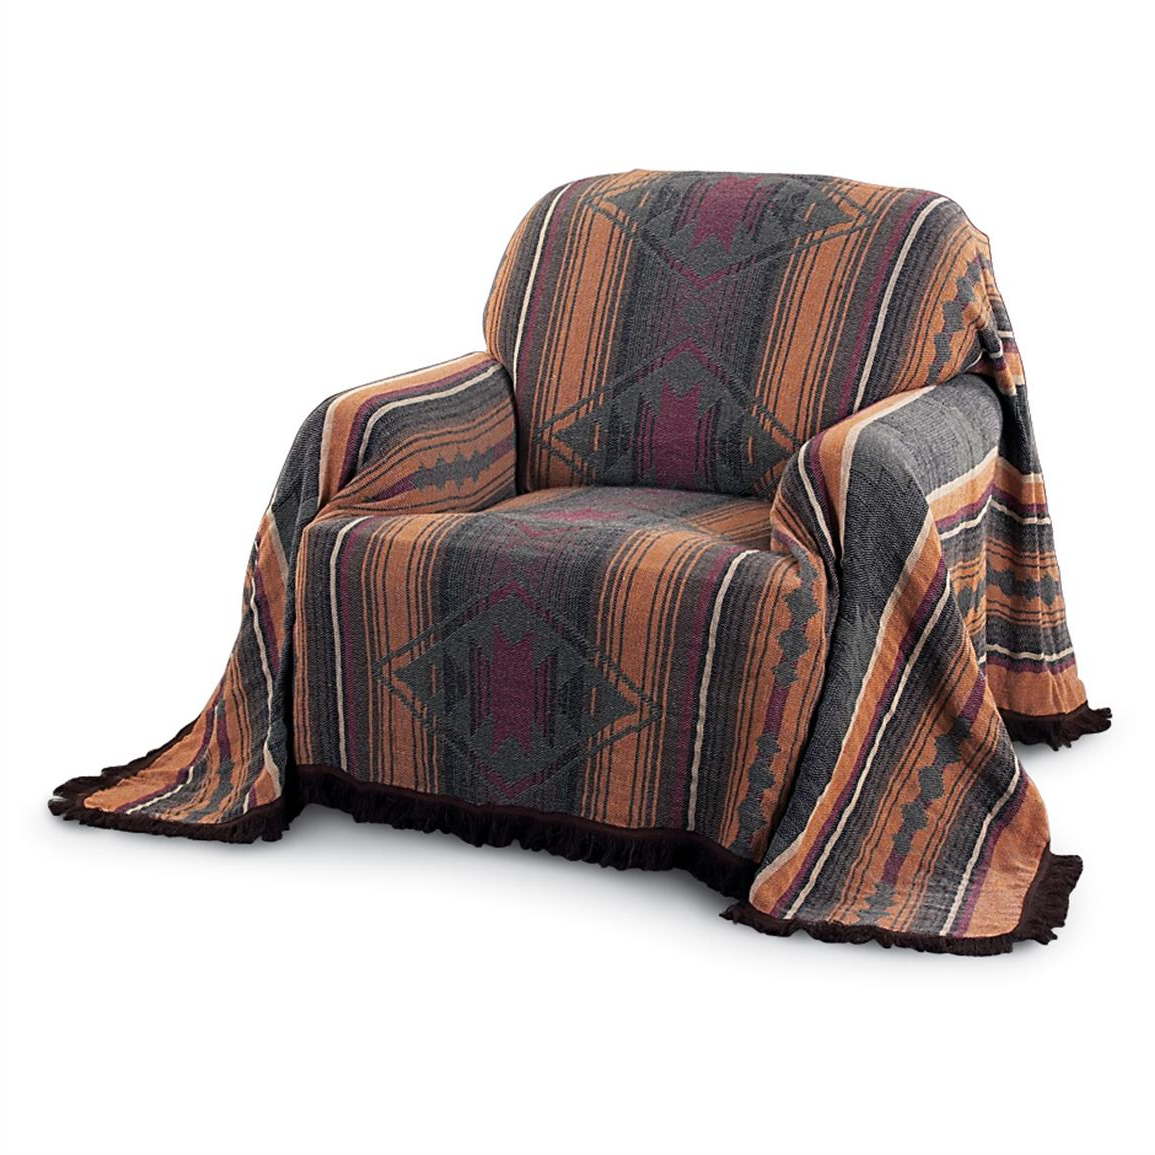 Favorite Throws For Sofas And Chairs Intended For Canyon Southwest Furniture Throw – 125722, Blankets & Throws At (View 20 of 20)